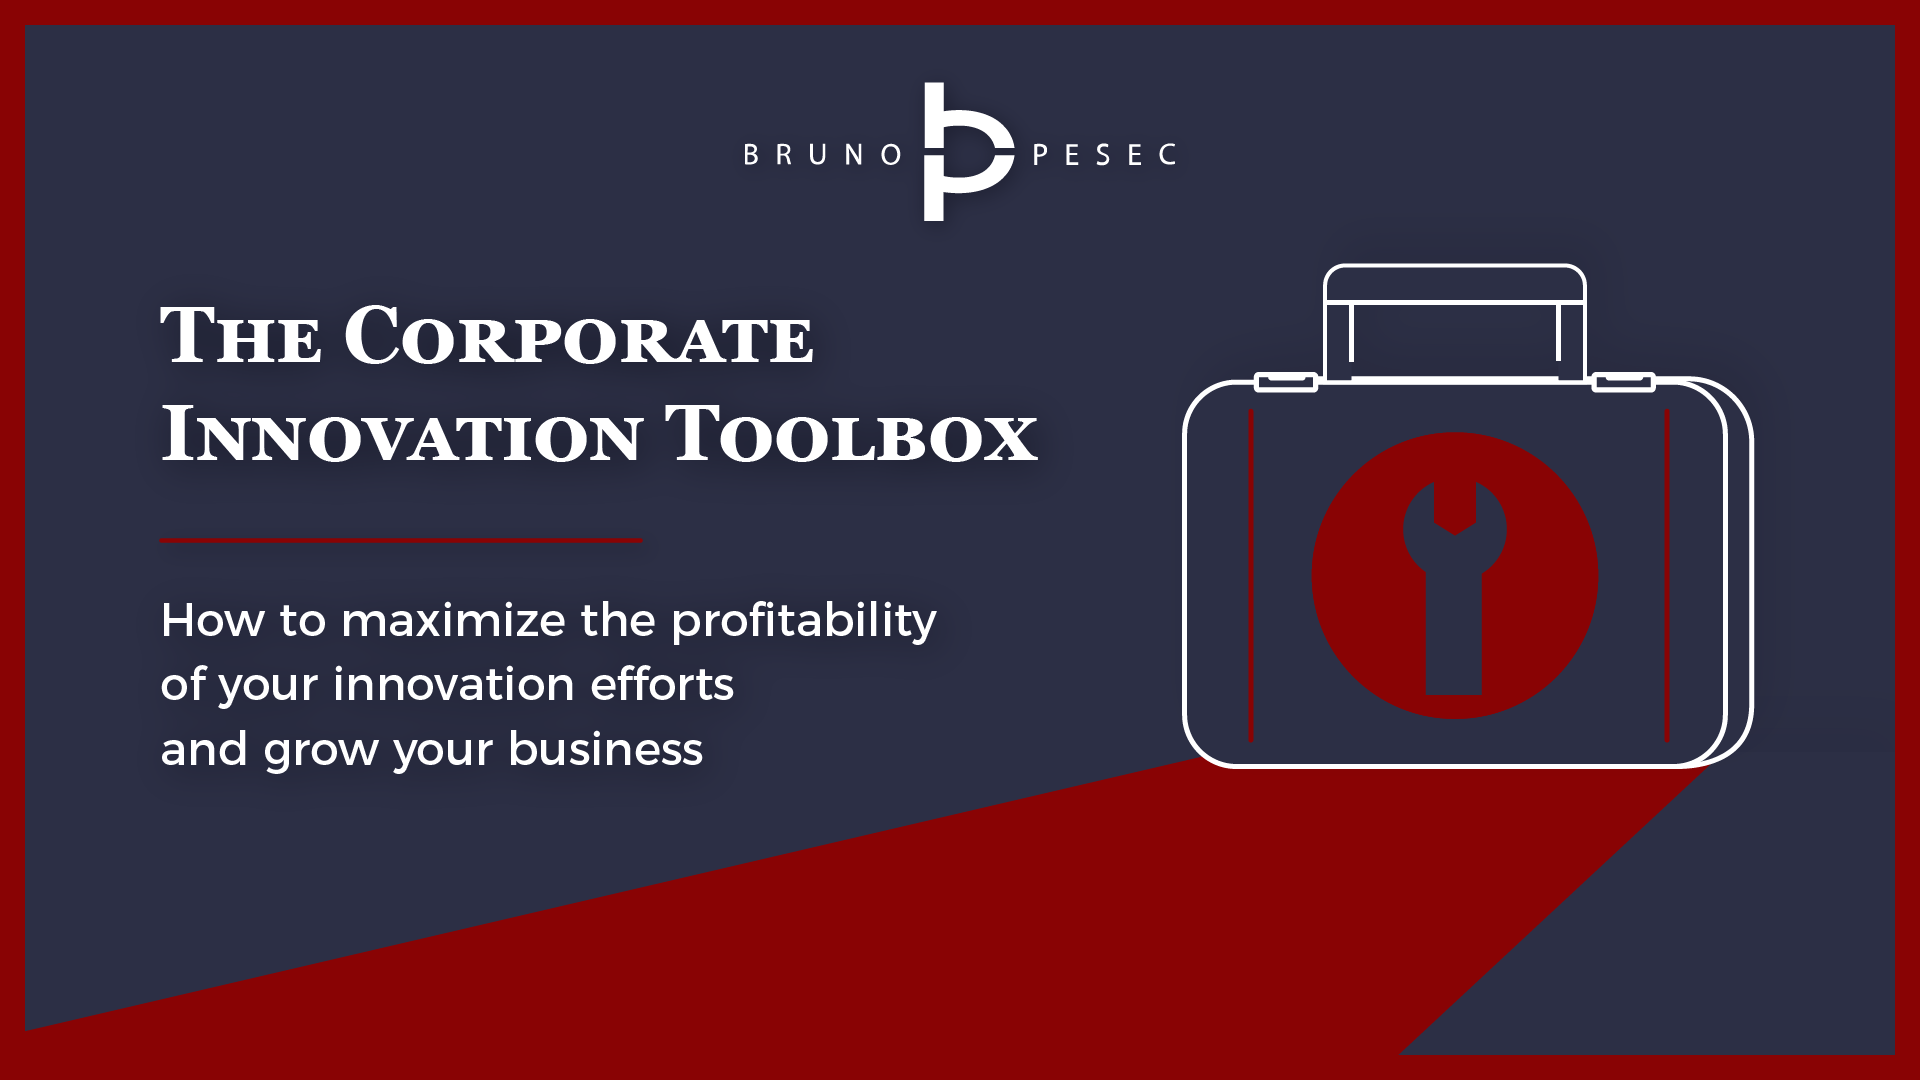 The Corporate Innovation Toolbox